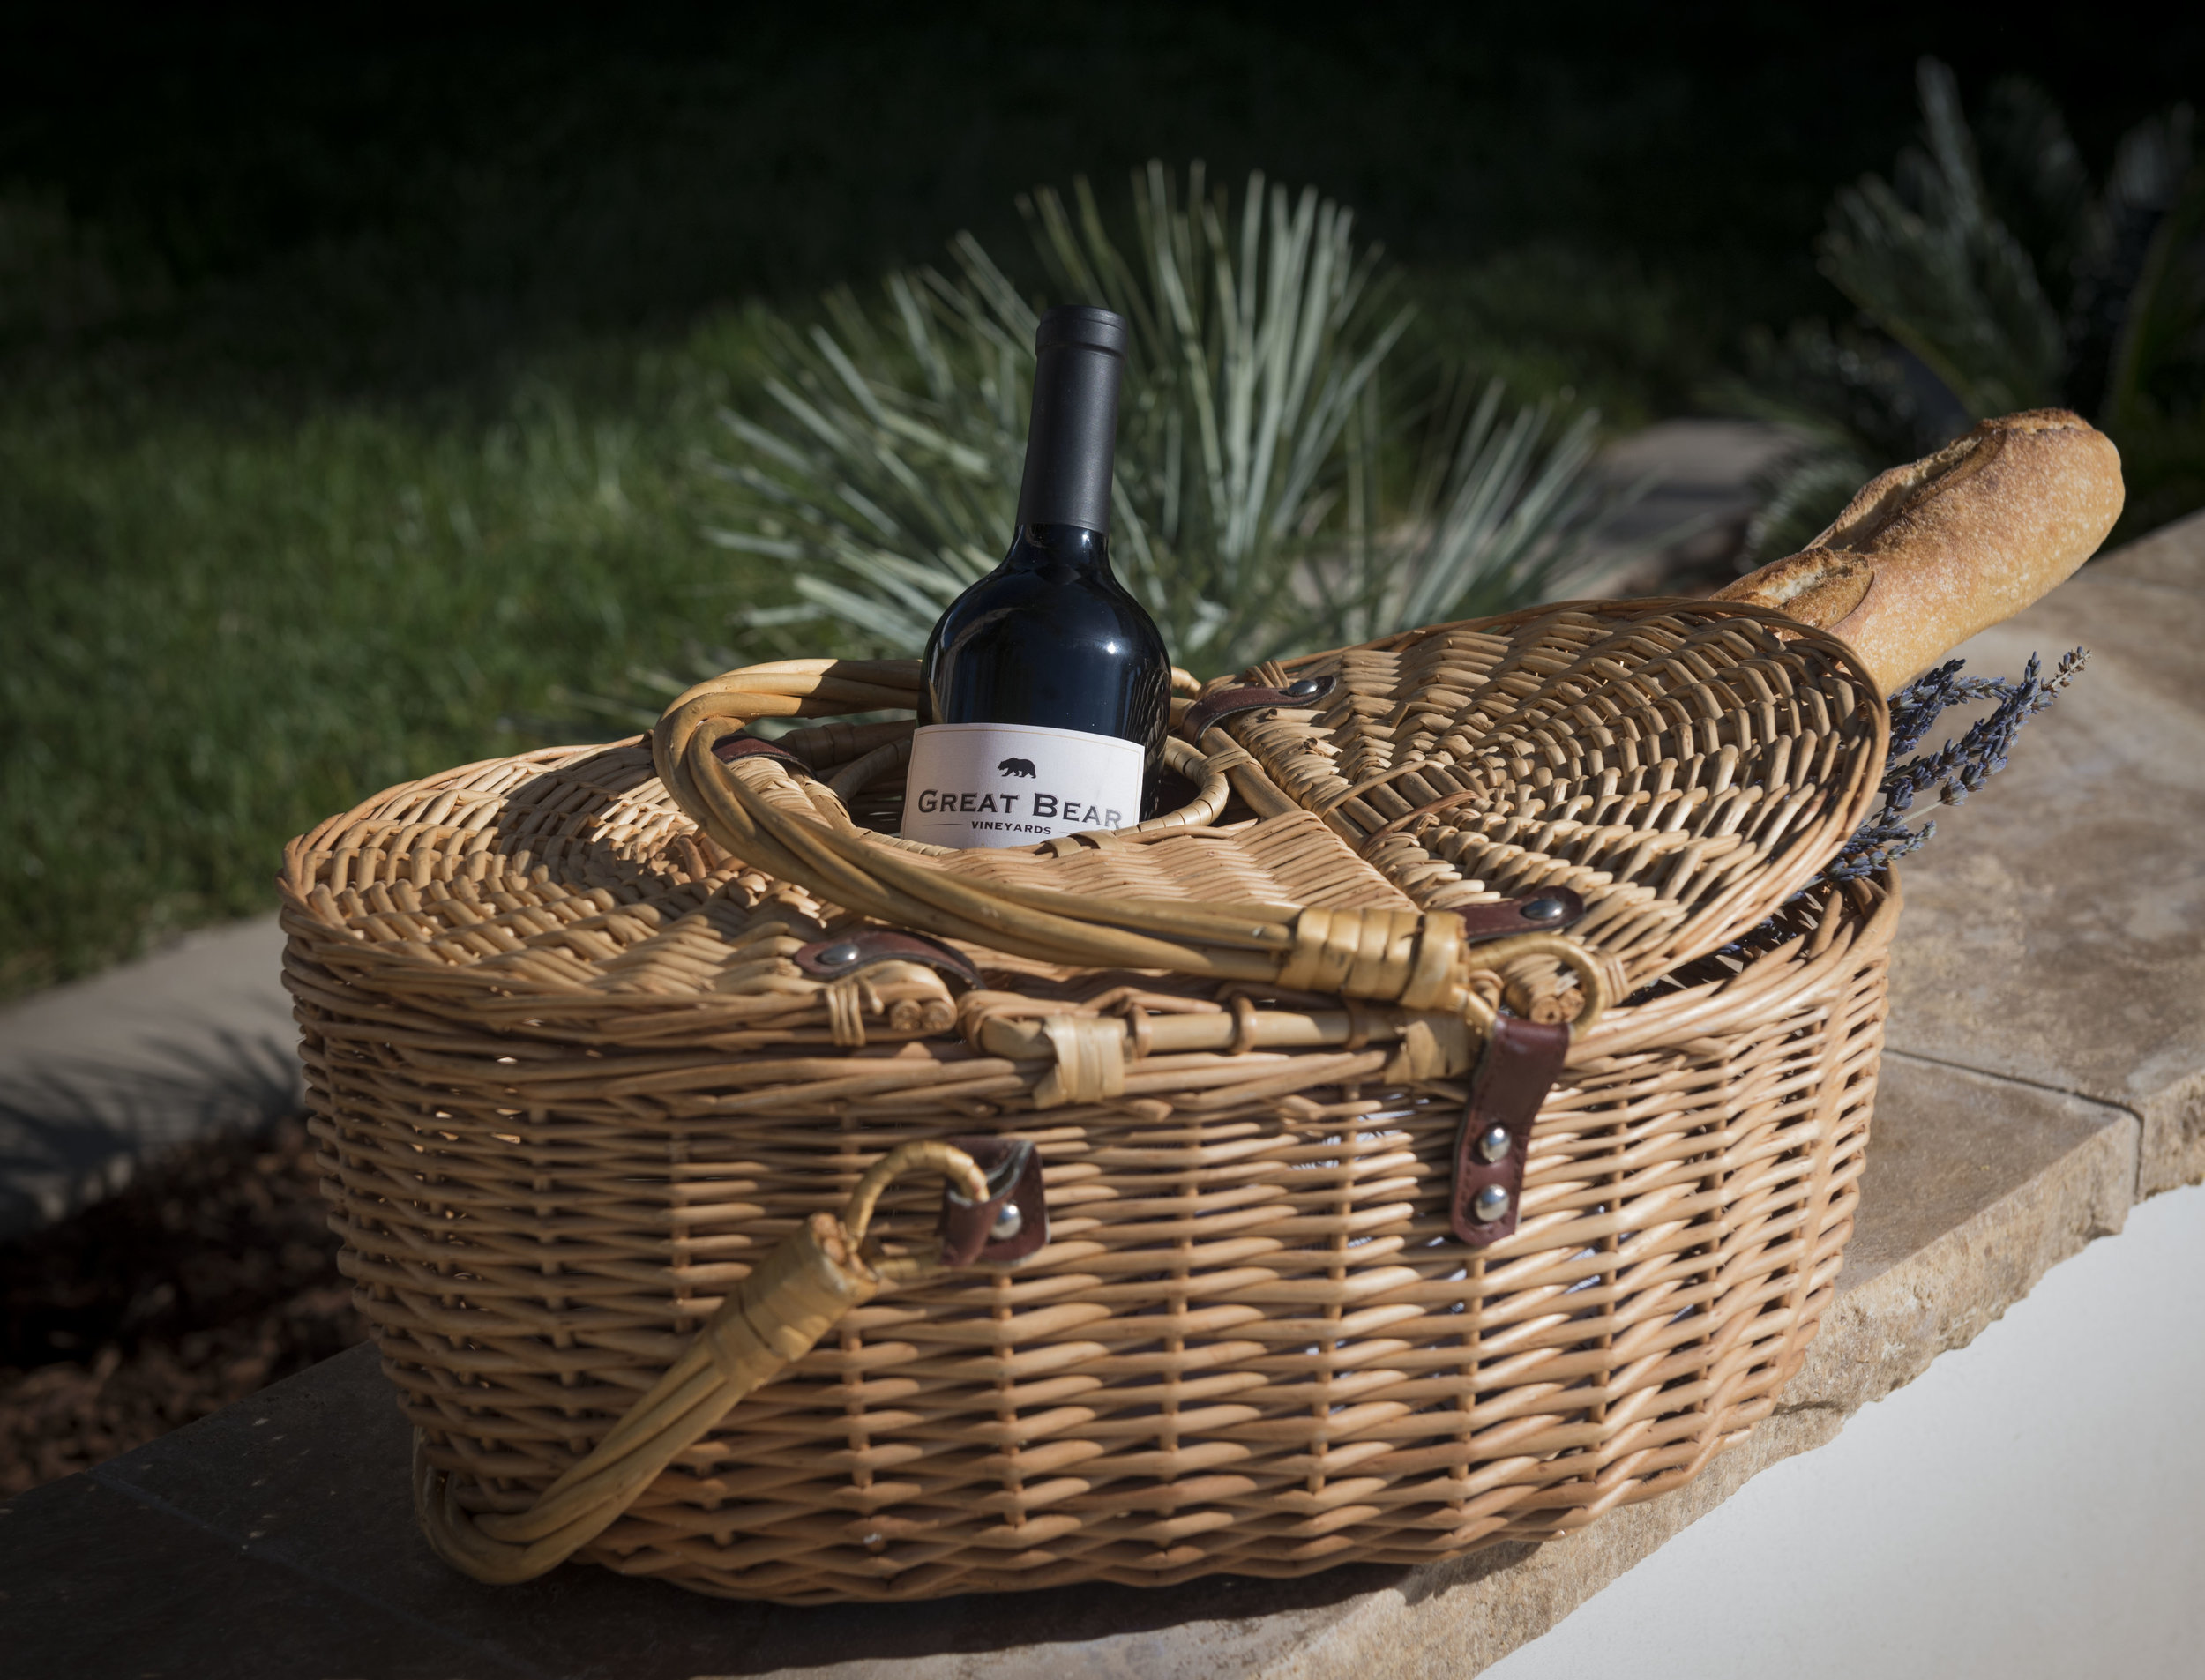 Basket with bottle of Great Bear wine inside and a baguette